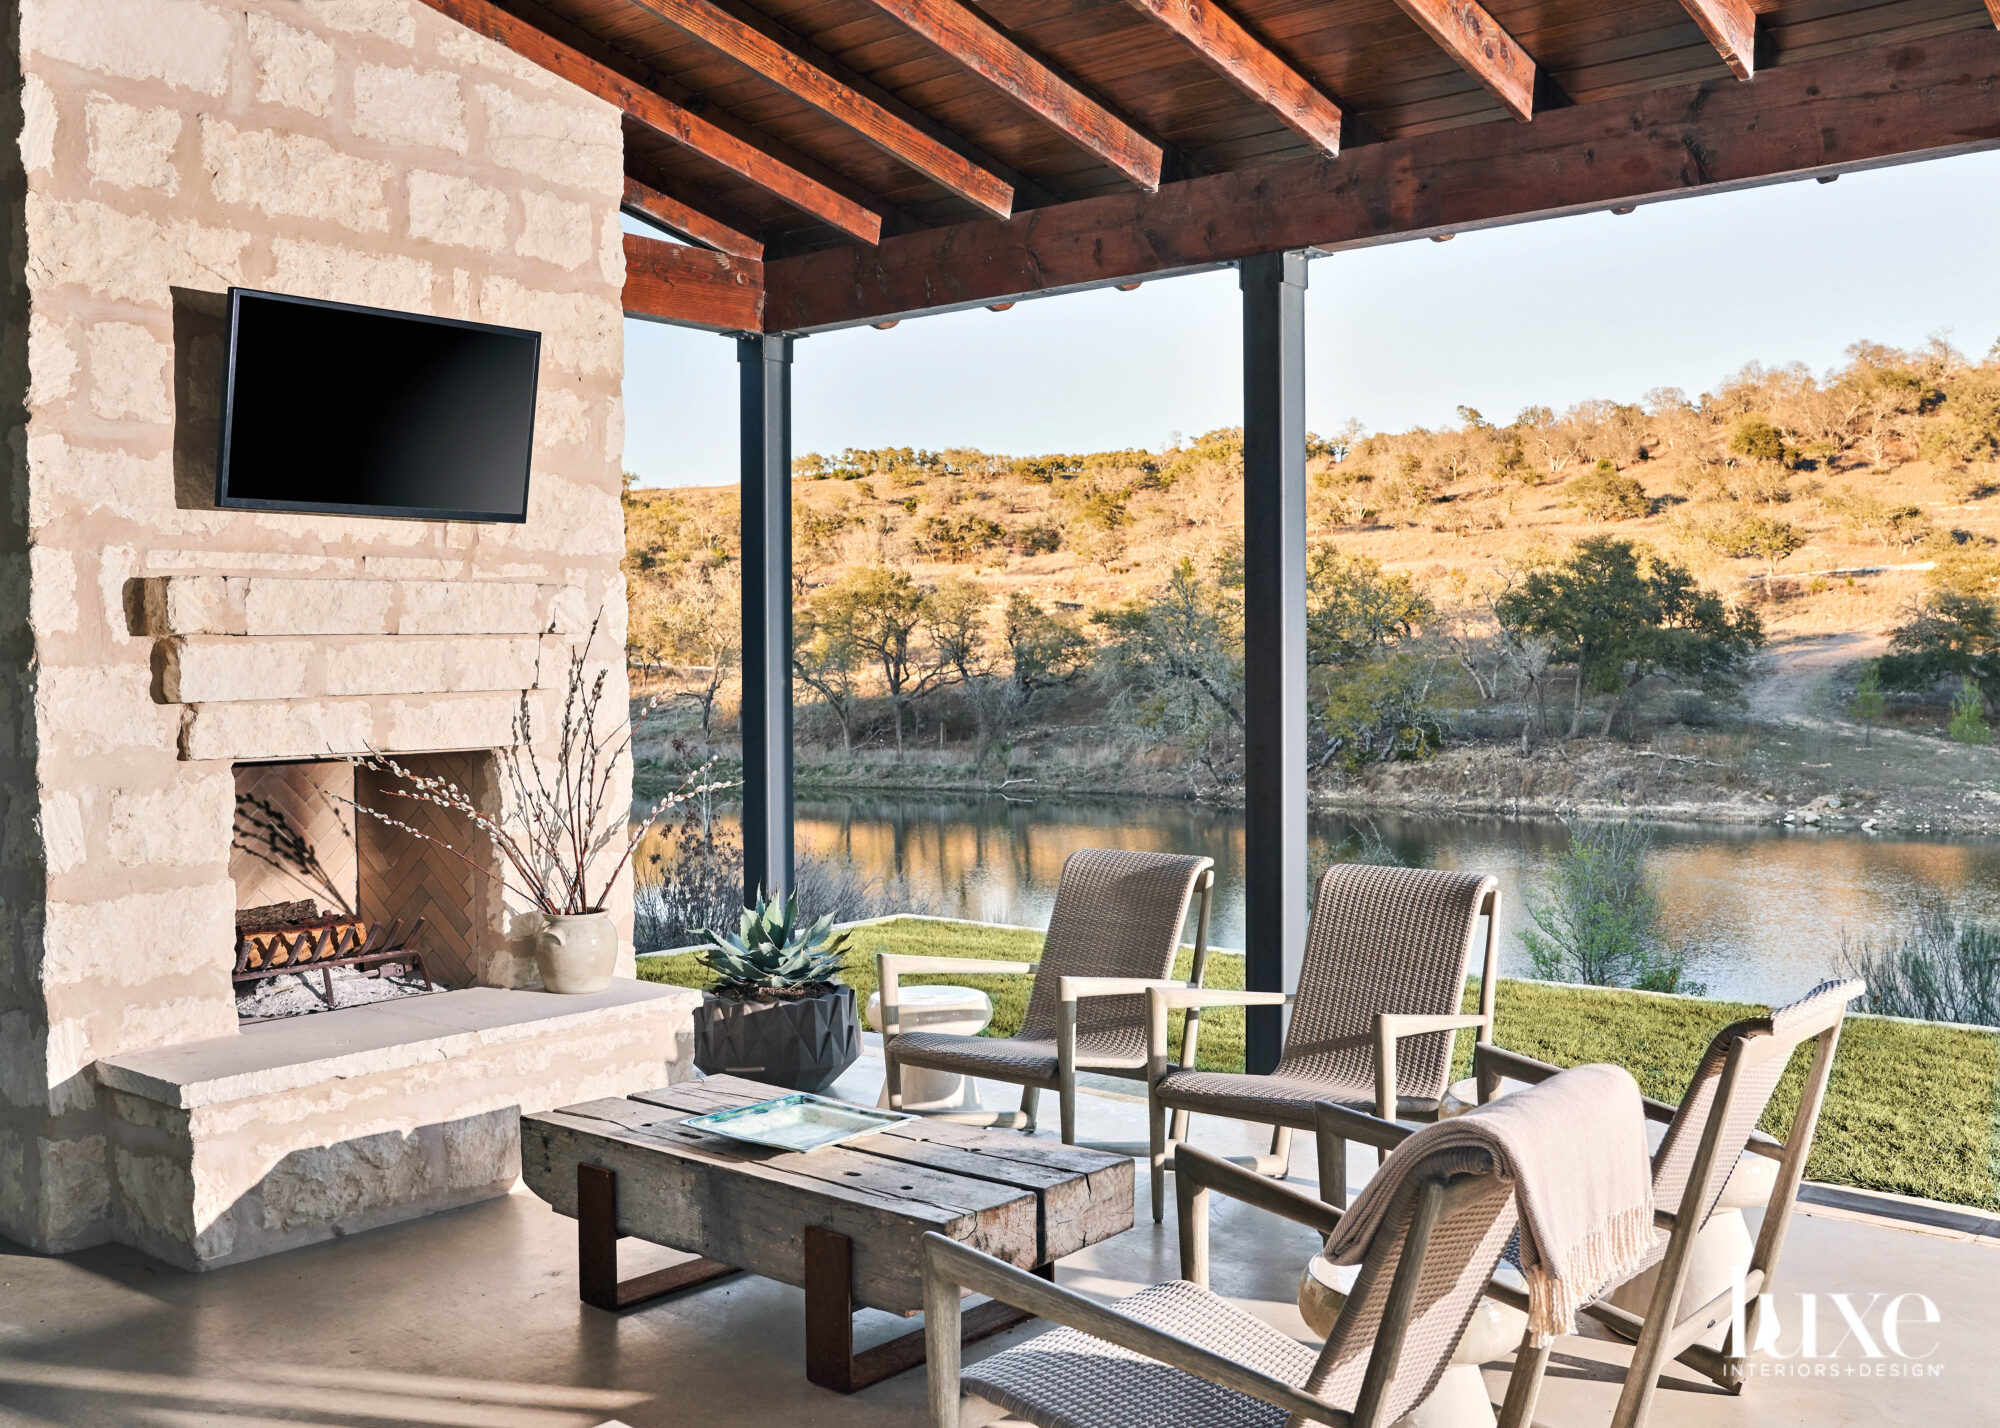 Outdoor seating area overlooking a...